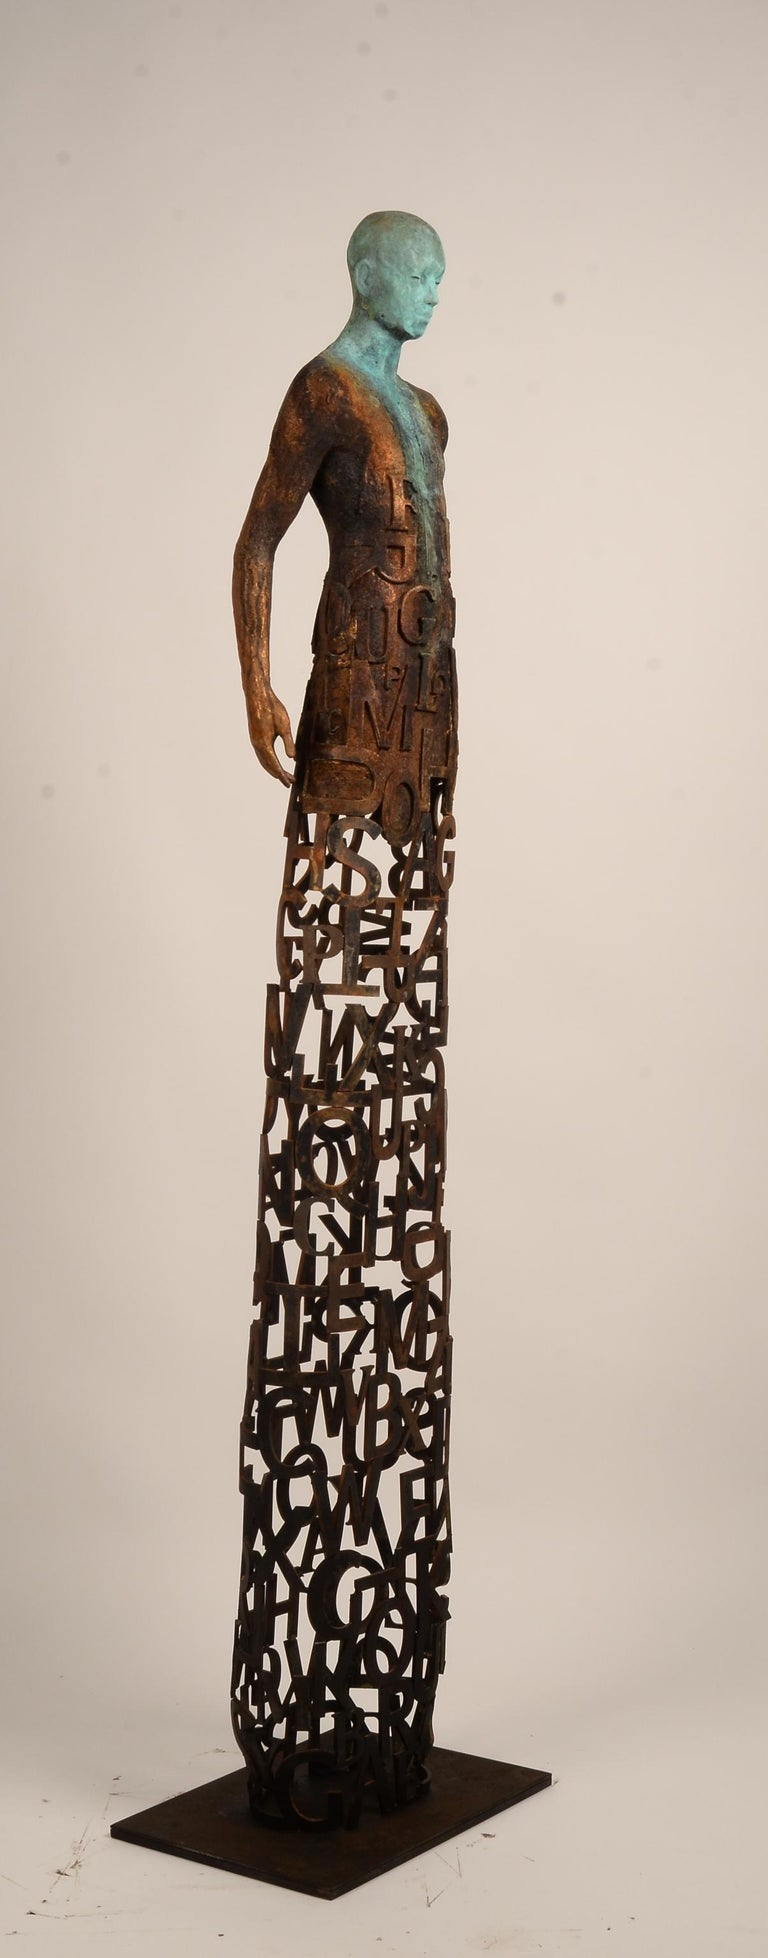 Nuntius - Bronze and Steel Sculpture with Figure and See Through